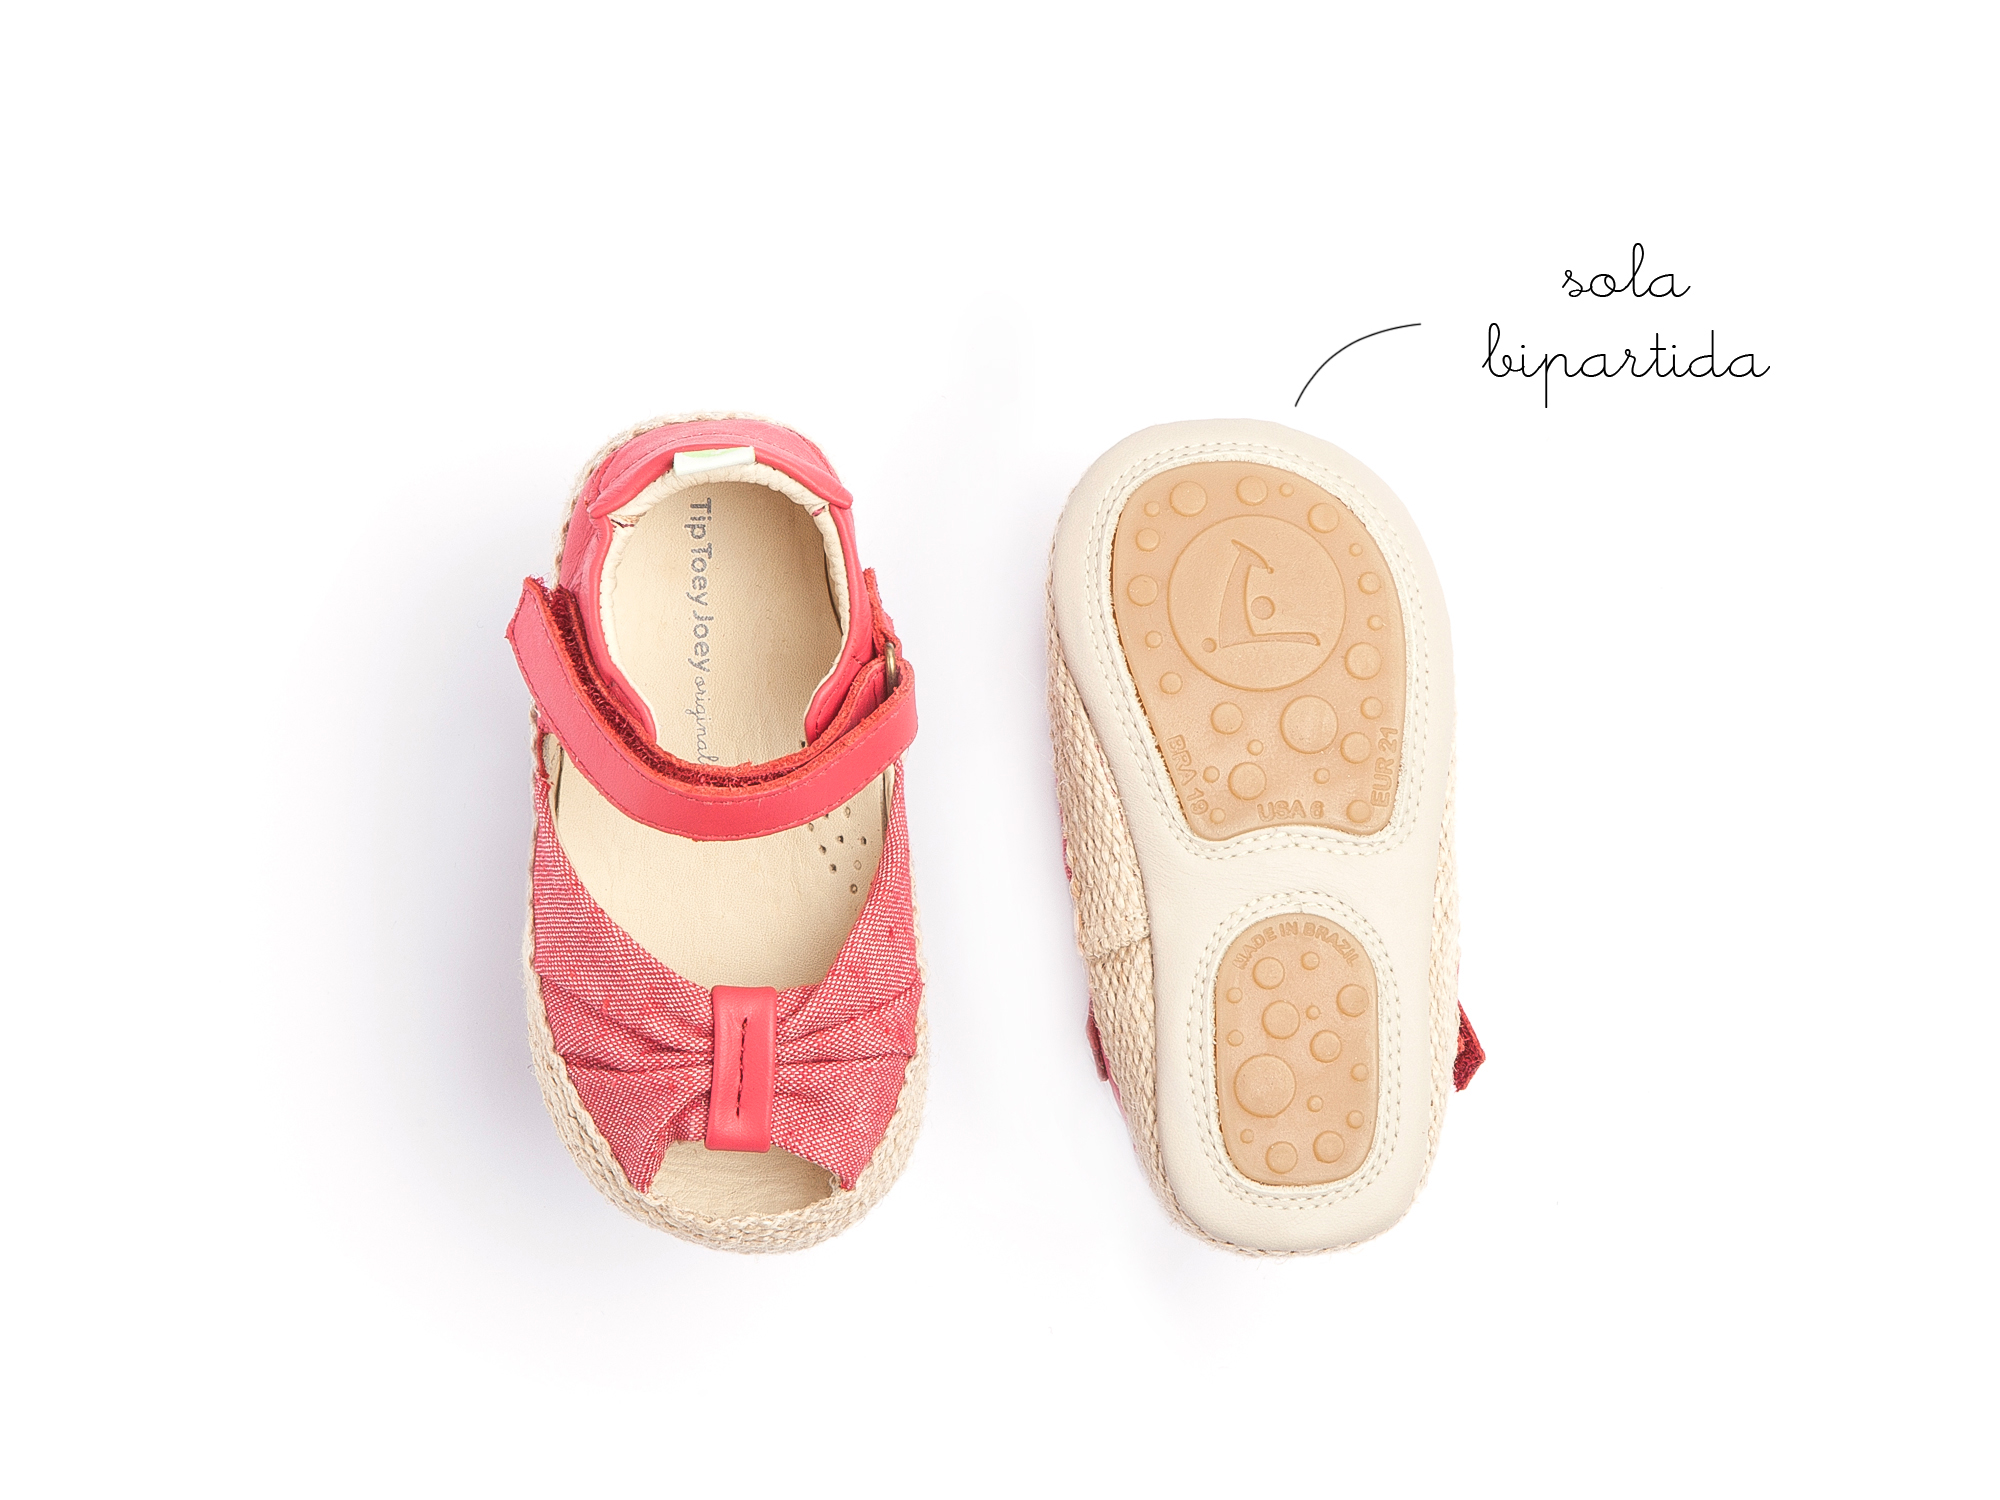 Sandália Coasty Cranberry Canvas/ Cranberry Baby 0 à 2 anos - 1